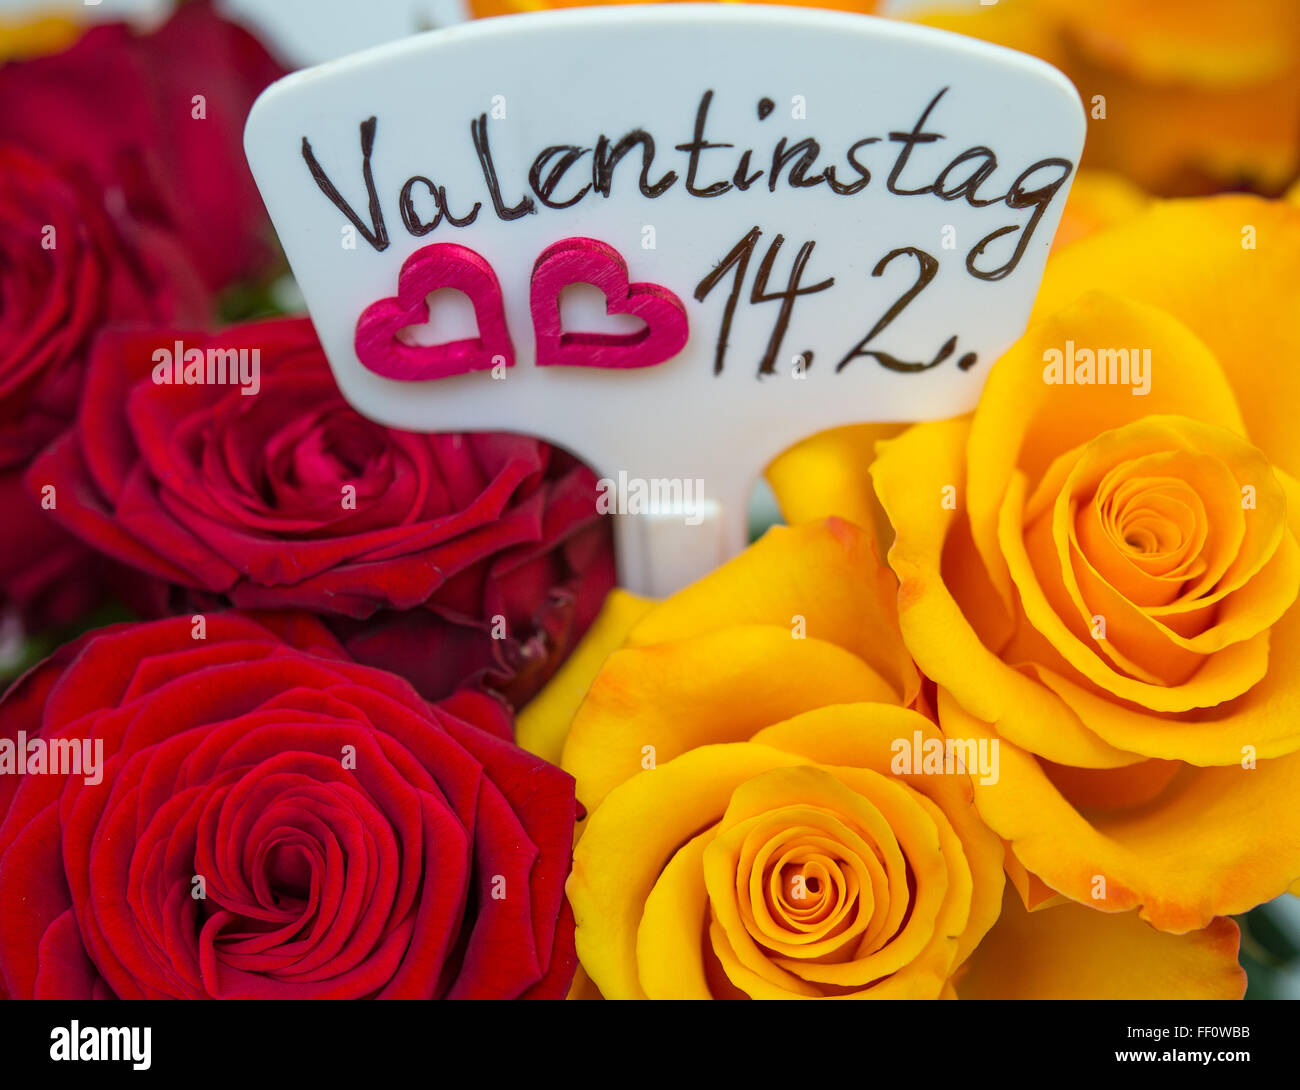 8th feb 2016 valentines day 142 is written on a small sign inbetween roses in a florist in manchschnow germany 8 february 2016